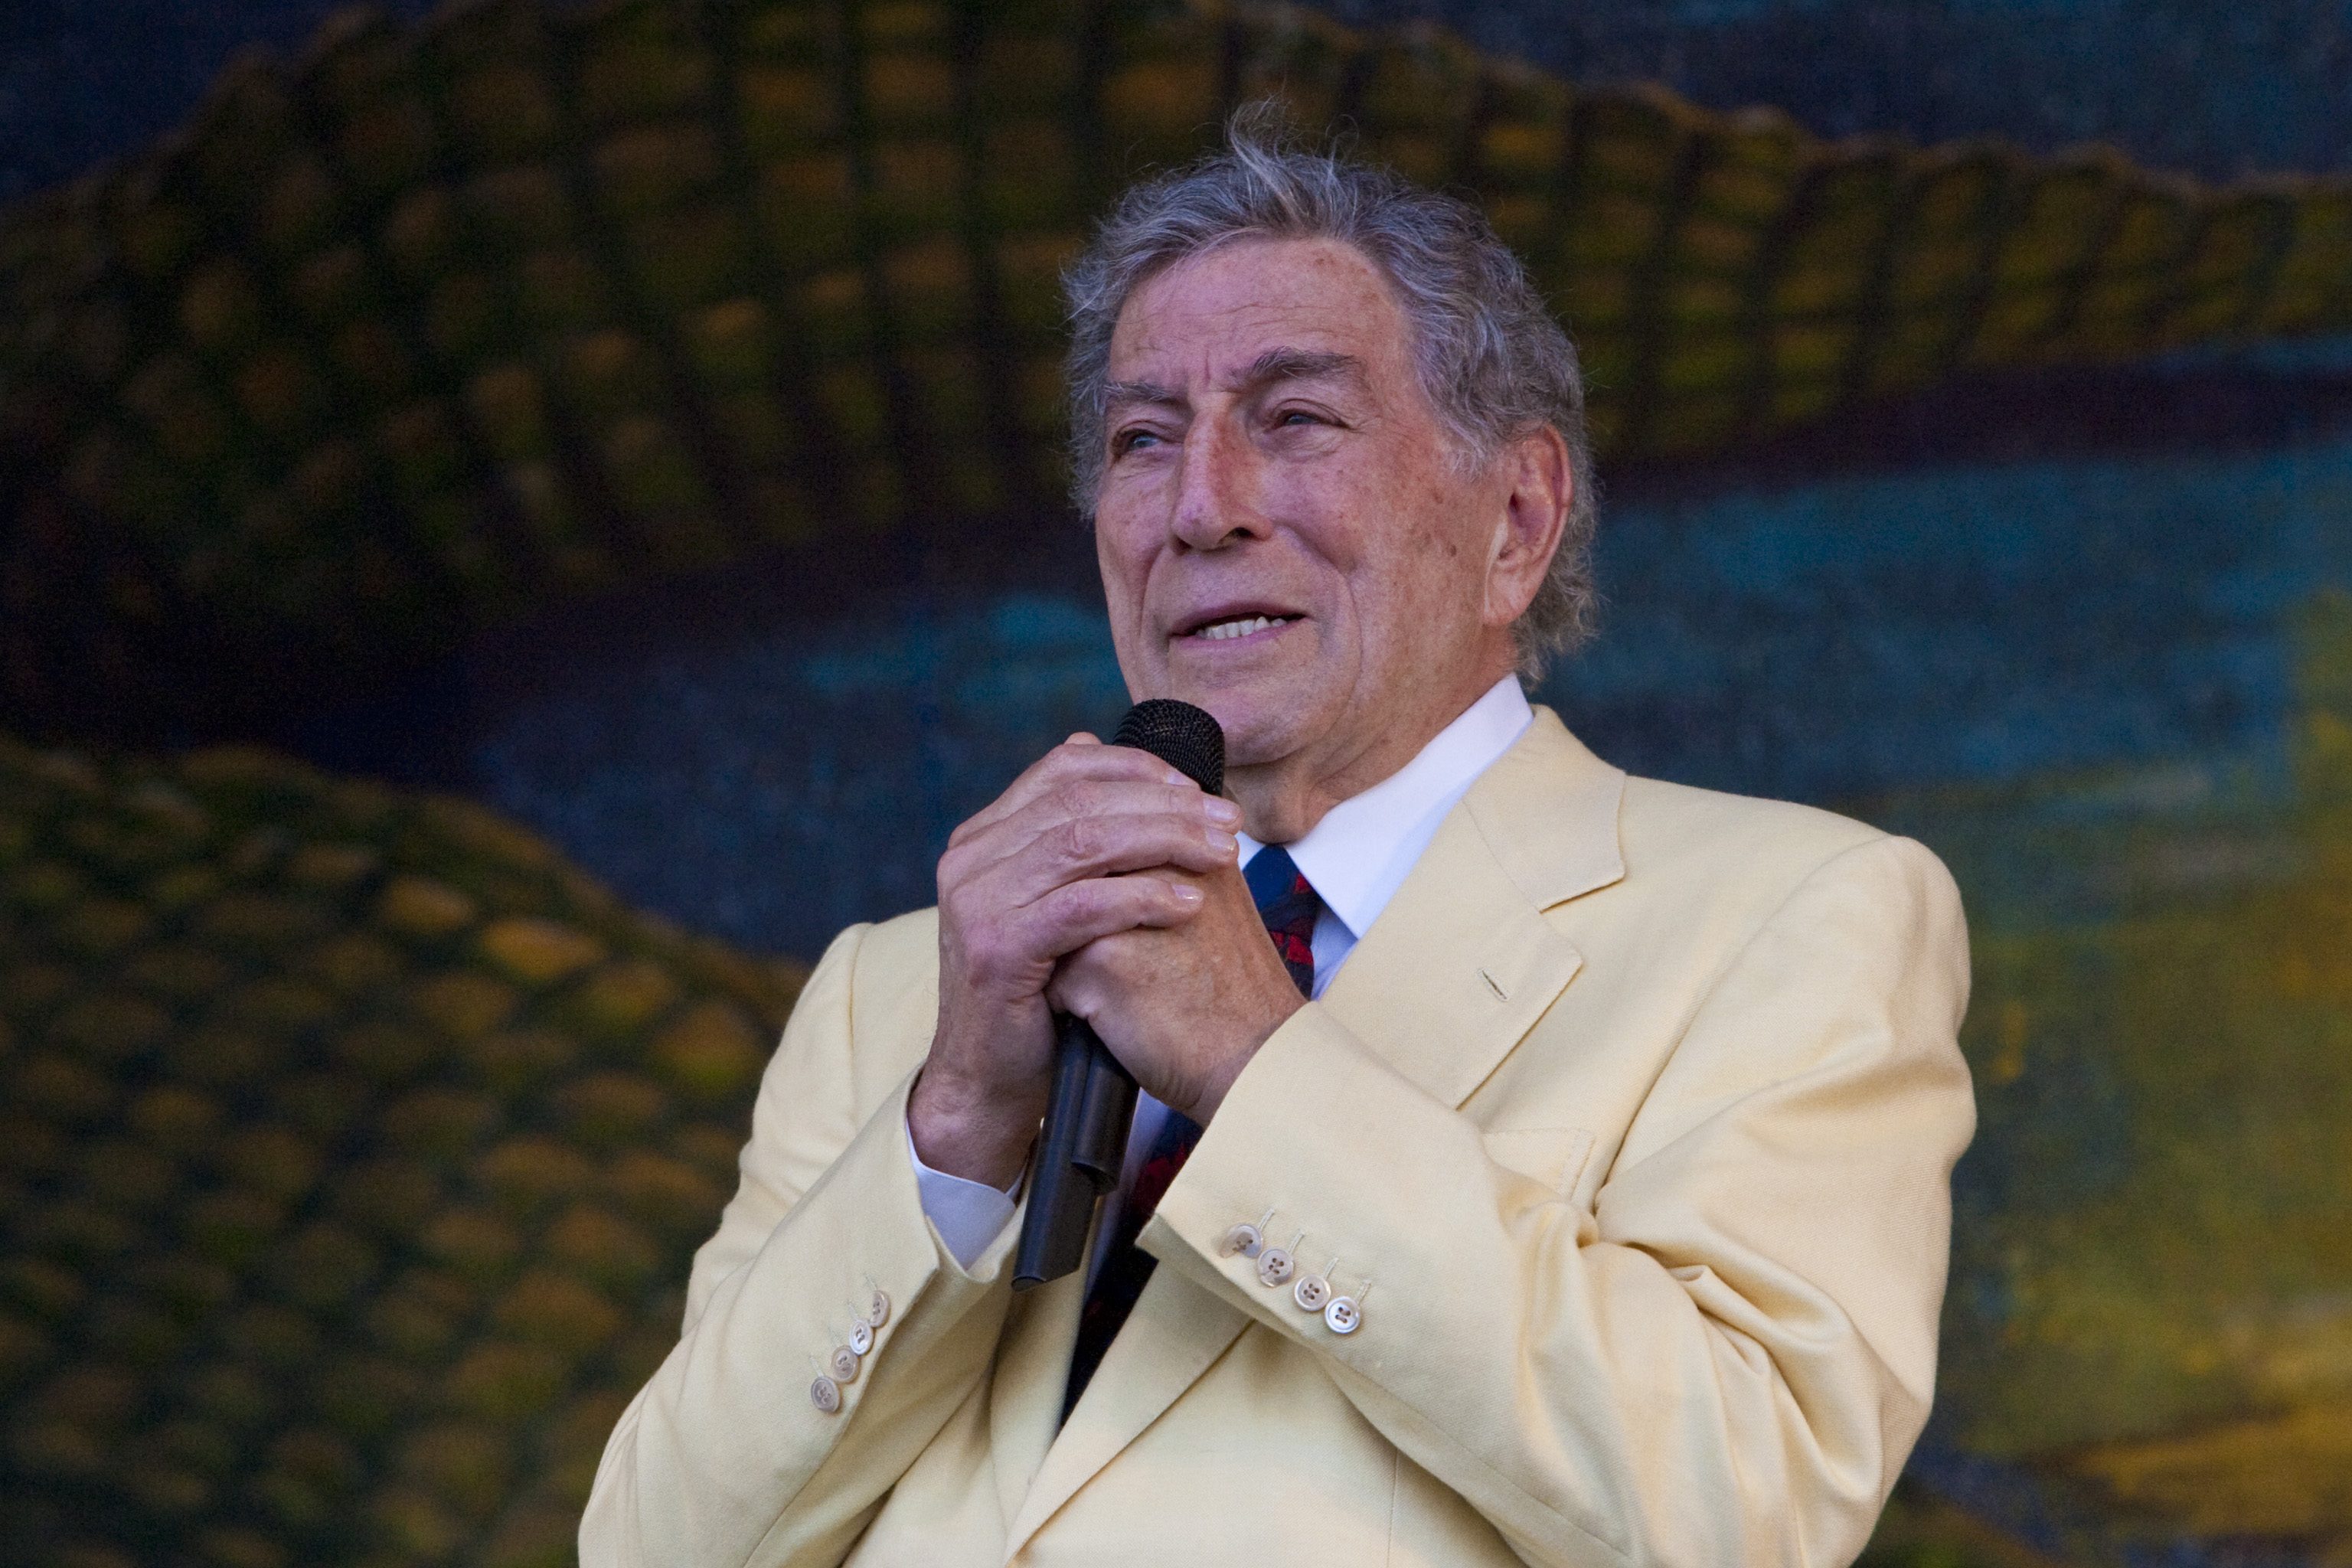 Tony Bennett at the 40th Anniversary New Orleans Jazz & Heritage Festival, USA